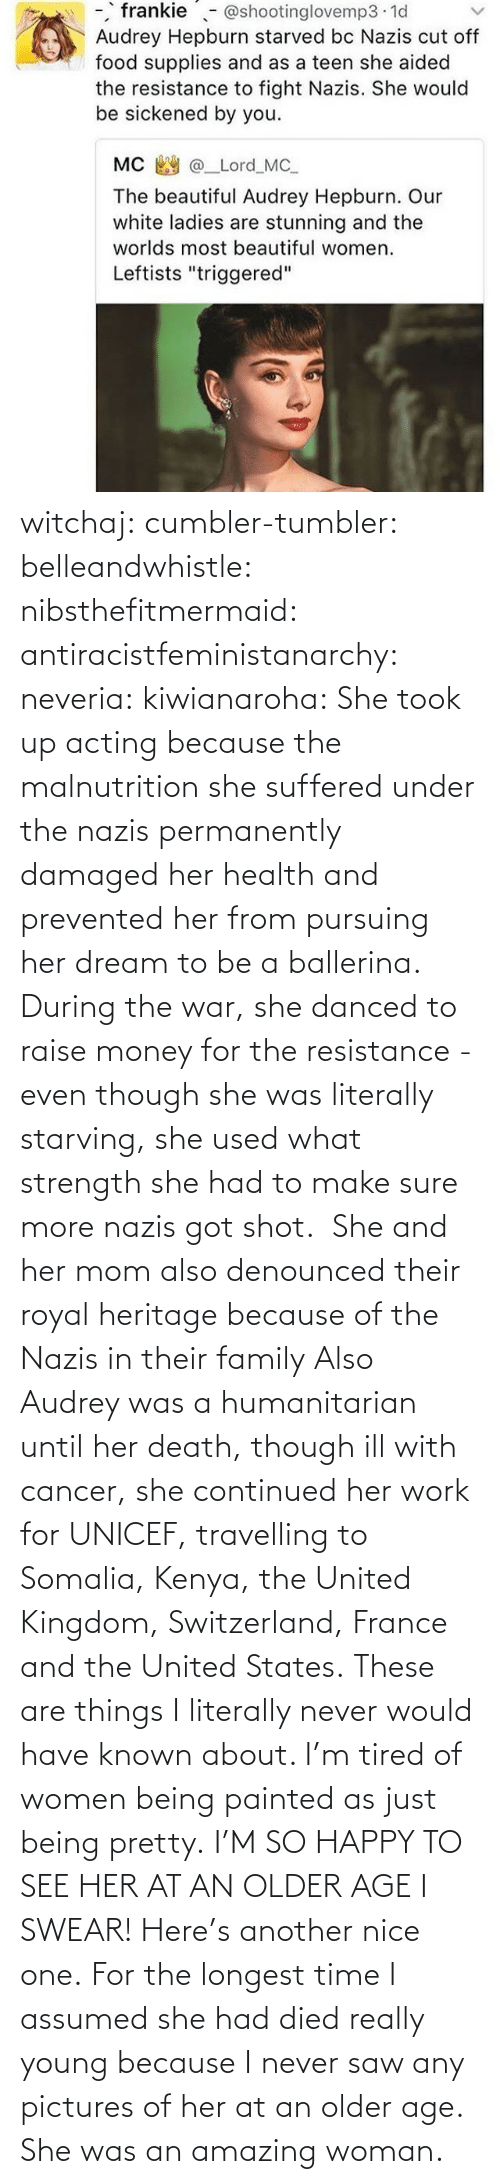 media: witchaj: cumbler-tumbler:  belleandwhistle:  nibsthefitmermaid:  antiracistfeministanarchy:  neveria:  kiwianaroha: She took up acting because the malnutrition she suffered under the nazis permanently damaged her health and prevented her from pursuing her dream to be a ballerina. During the war, she danced to raise money for the resistance - even though she was literally starving, she used what strength she had to make sure more nazis got shot.  She and her mom also denounced their royal heritage because of the Nazis in their family  Also Audrey was a humanitarian until her death, though ill with cancer, she continued her work for UNICEF, travelling to Somalia, Kenya, the United Kingdom, Switzerland, France and the United States.  These are things I literally never would have known about. I'm tired of women being painted as just being pretty.  I'M SO HAPPY TO SEE HER AT AN OLDER AGE I SWEAR!  Here's another nice one.   For the longest time I assumed she had died really young because I never saw any pictures of her at an older age.  She was an amazing woman.